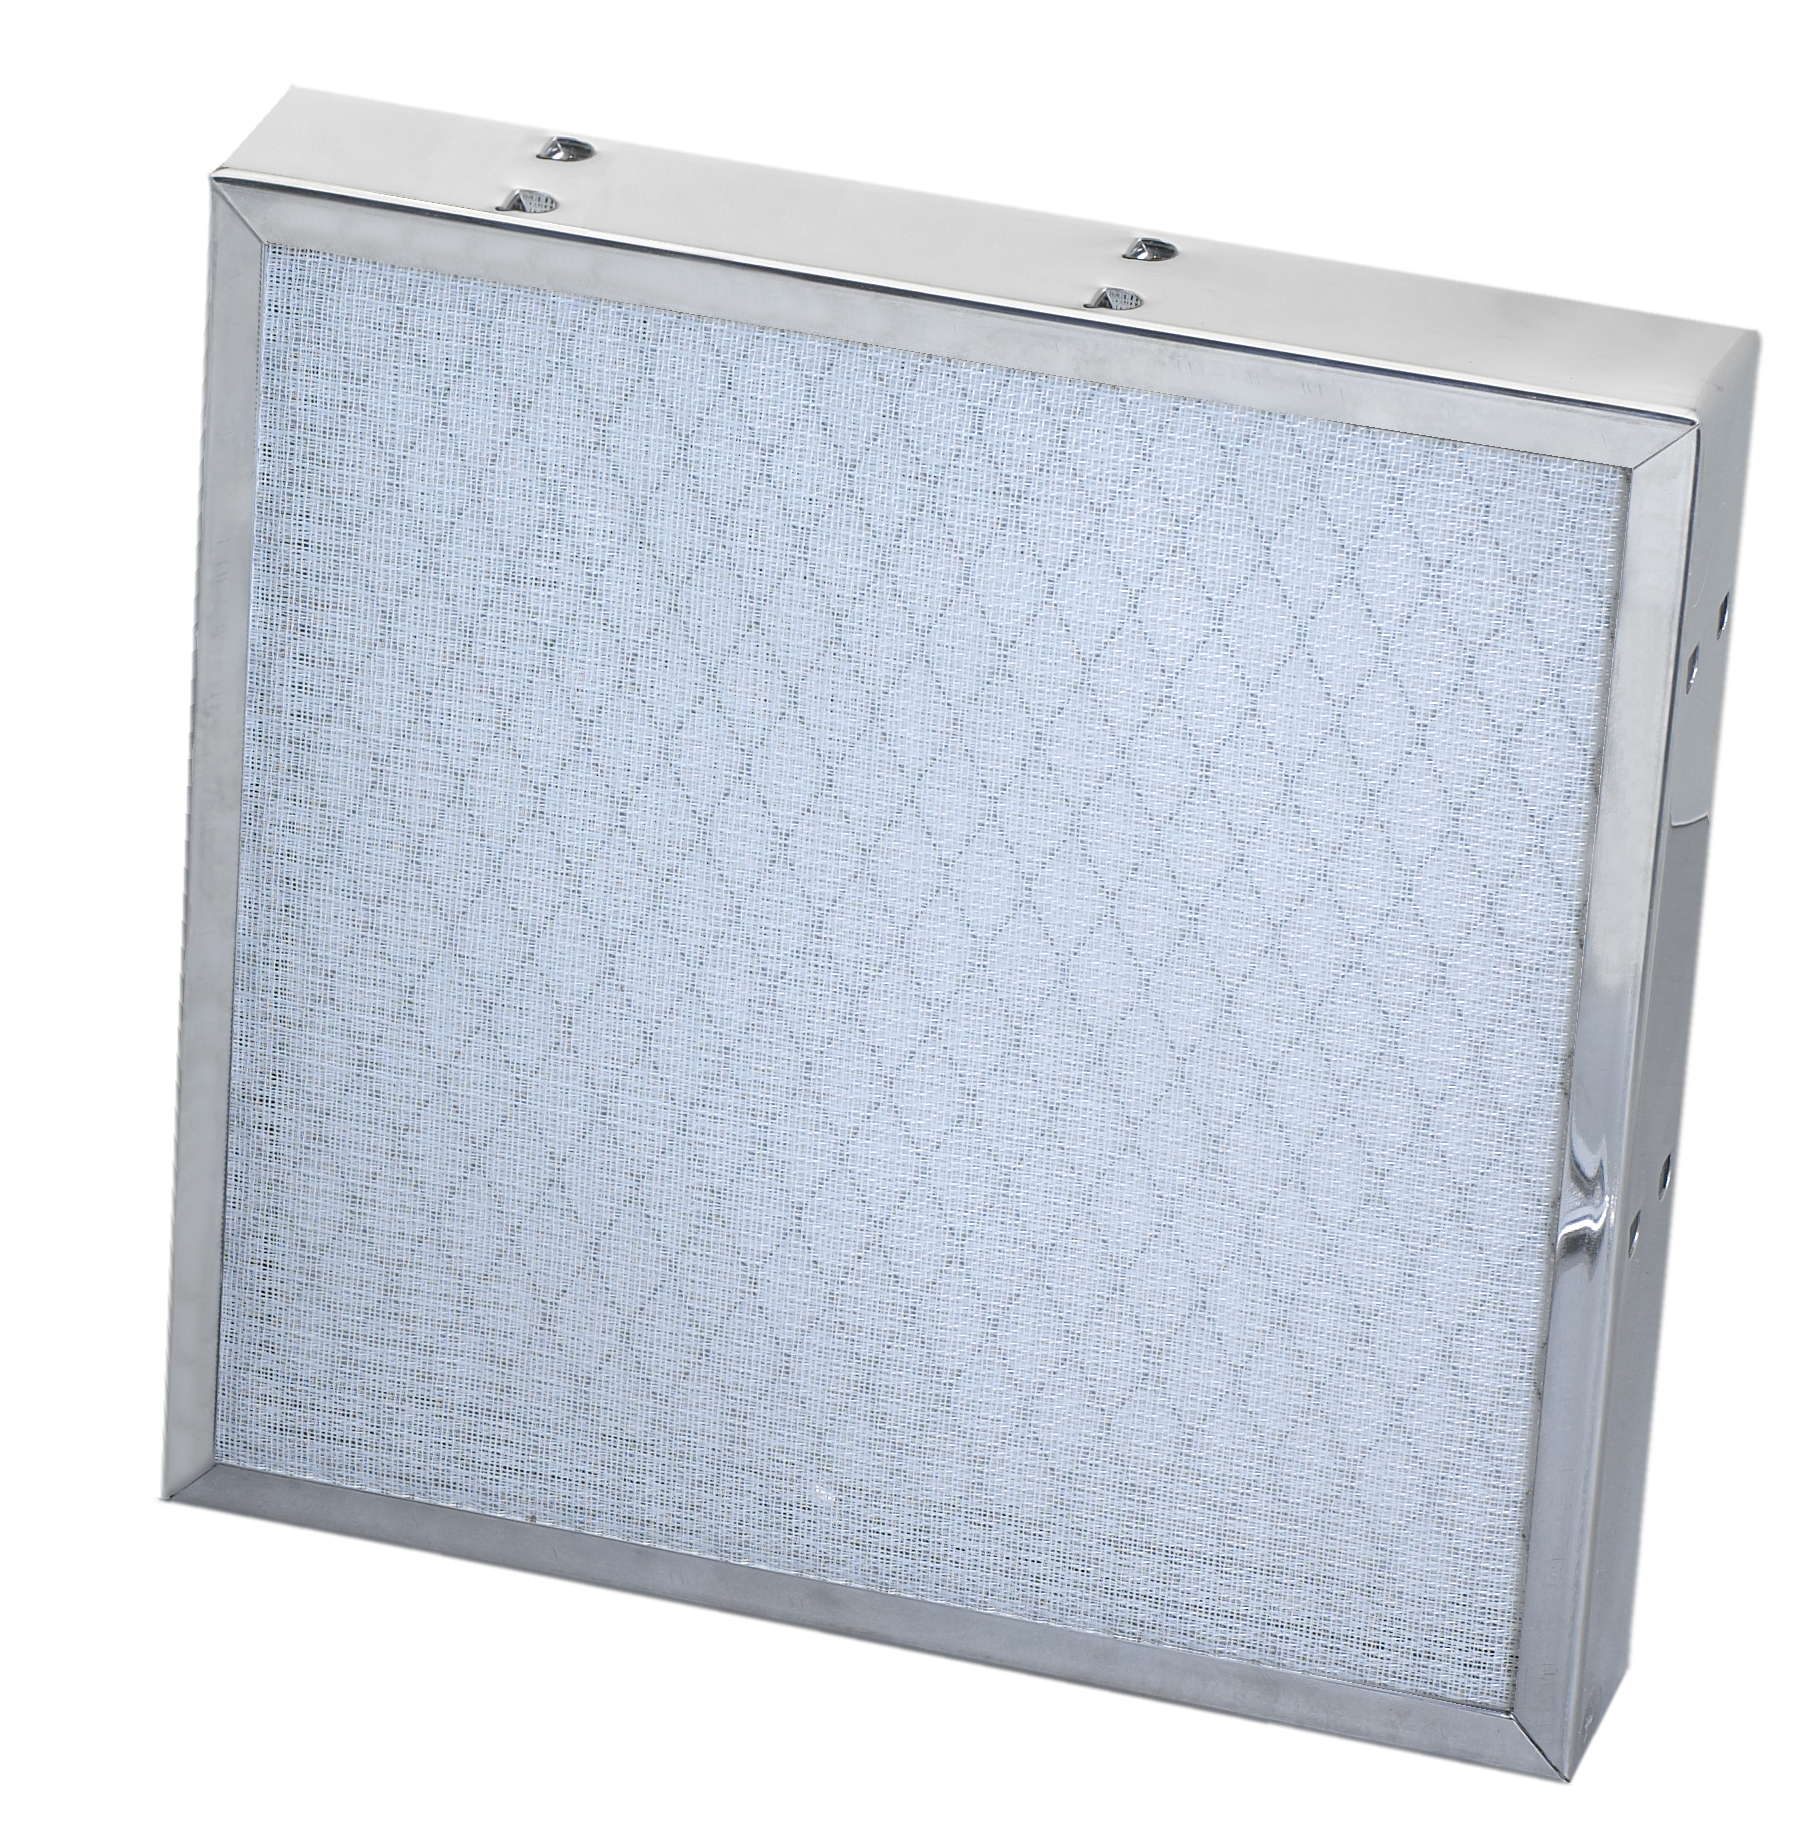 Commercial Air Filters Washable Air Filters Air Filtration  #4C607F